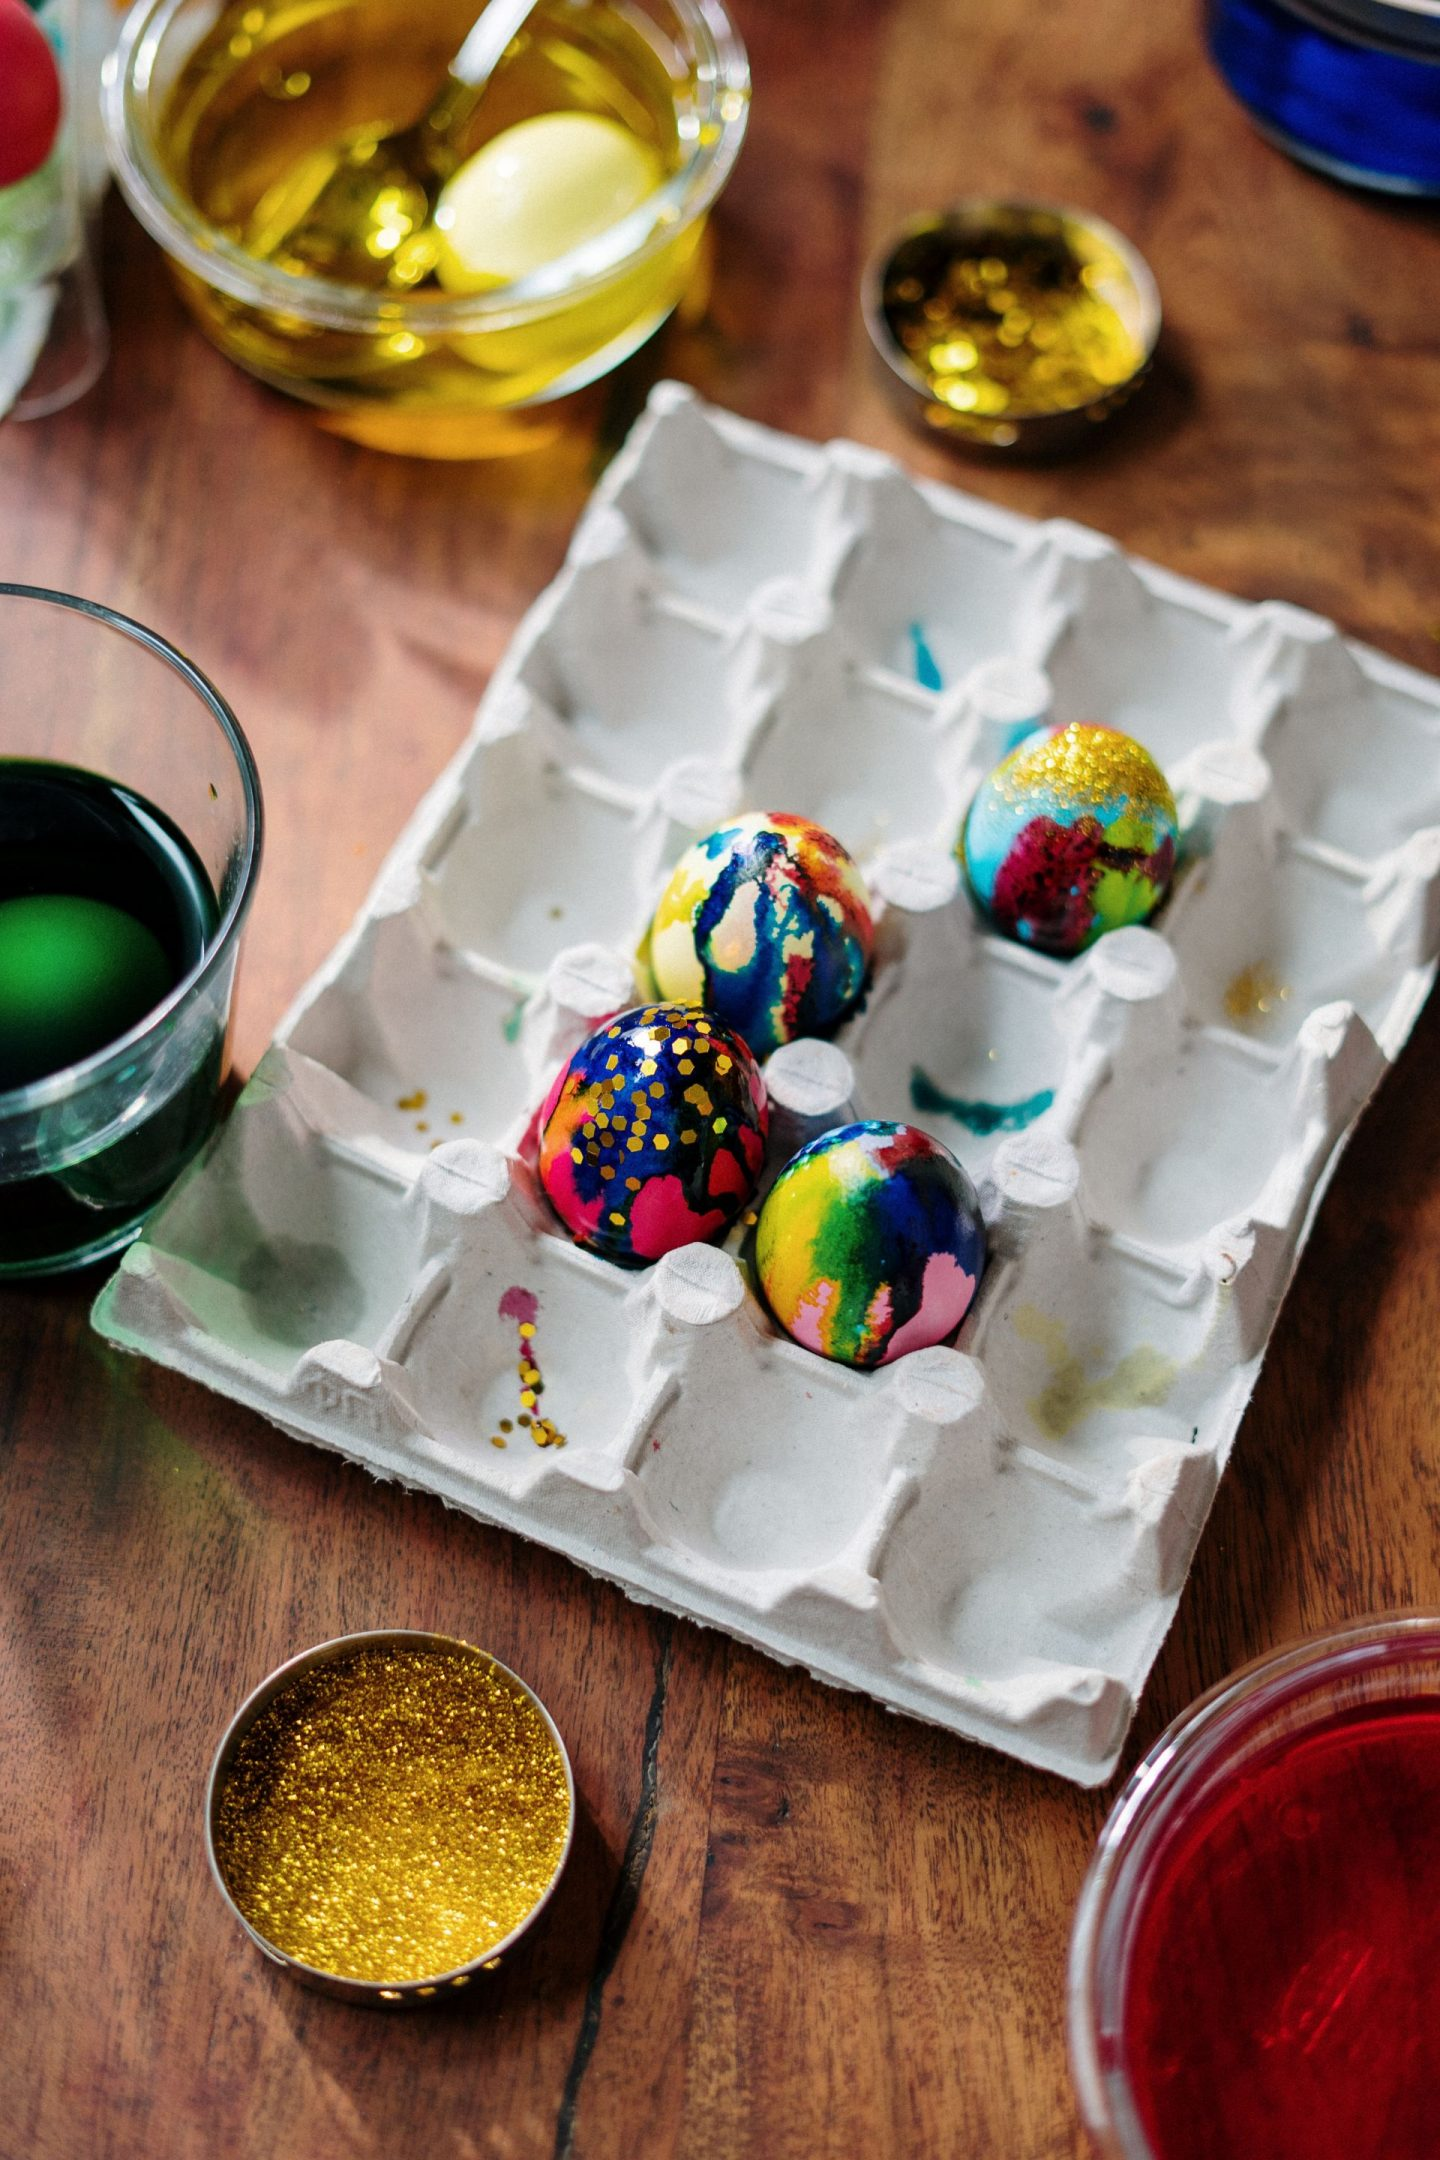 things to do at home during coronavirus: colourful painted eggs surrounded by pots of glitter and paint